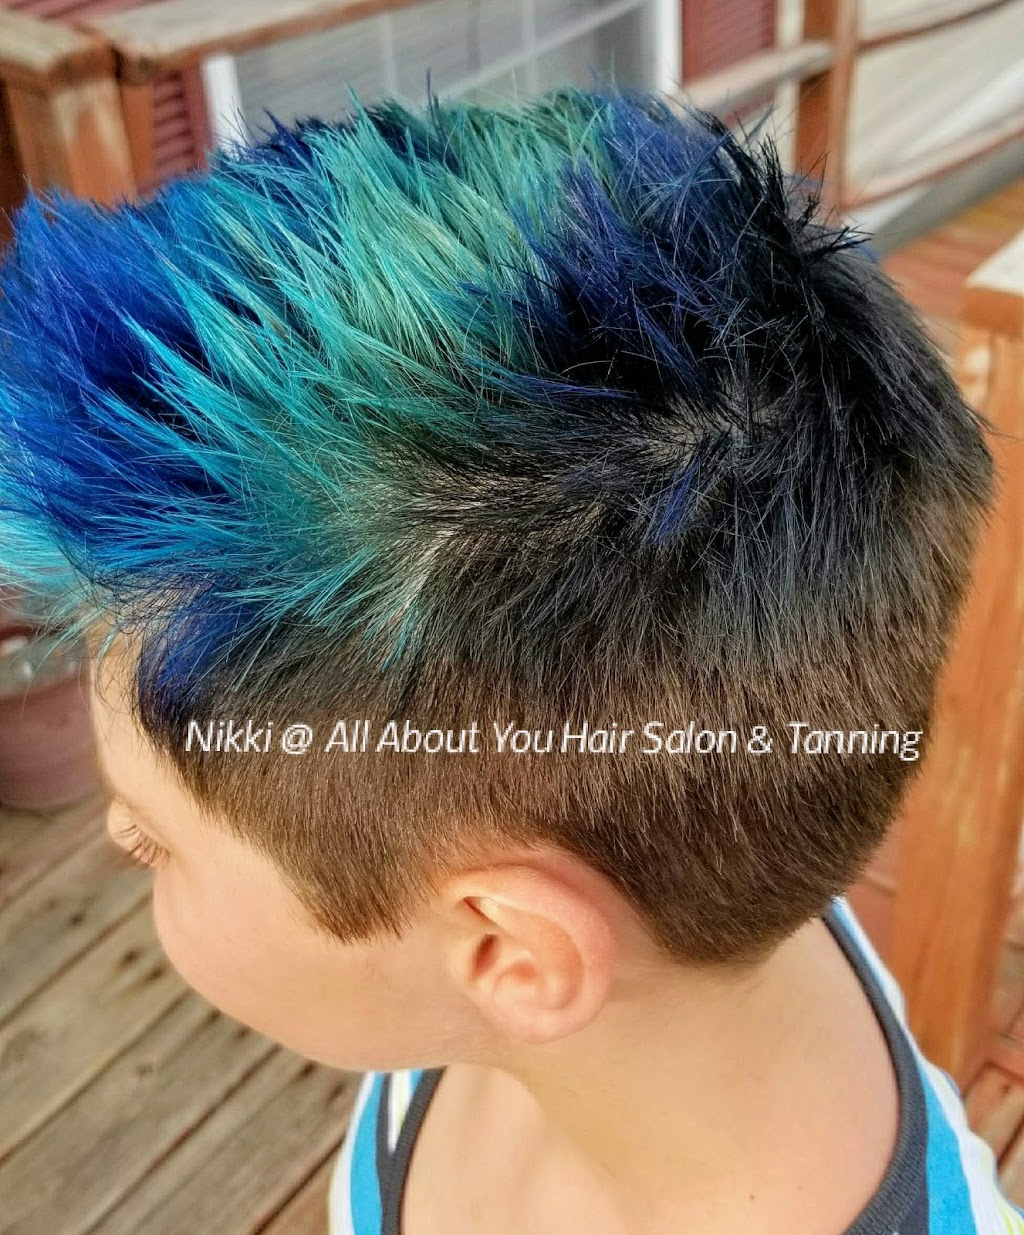 Nikkis Hair Shenanigans at All About You Hair And Tanning Salon - hair care  | Photo 2 of 10 | Address: 9227 County Line Rd, De Motte, IN 46310, USA | Phone: (765) 761-7119